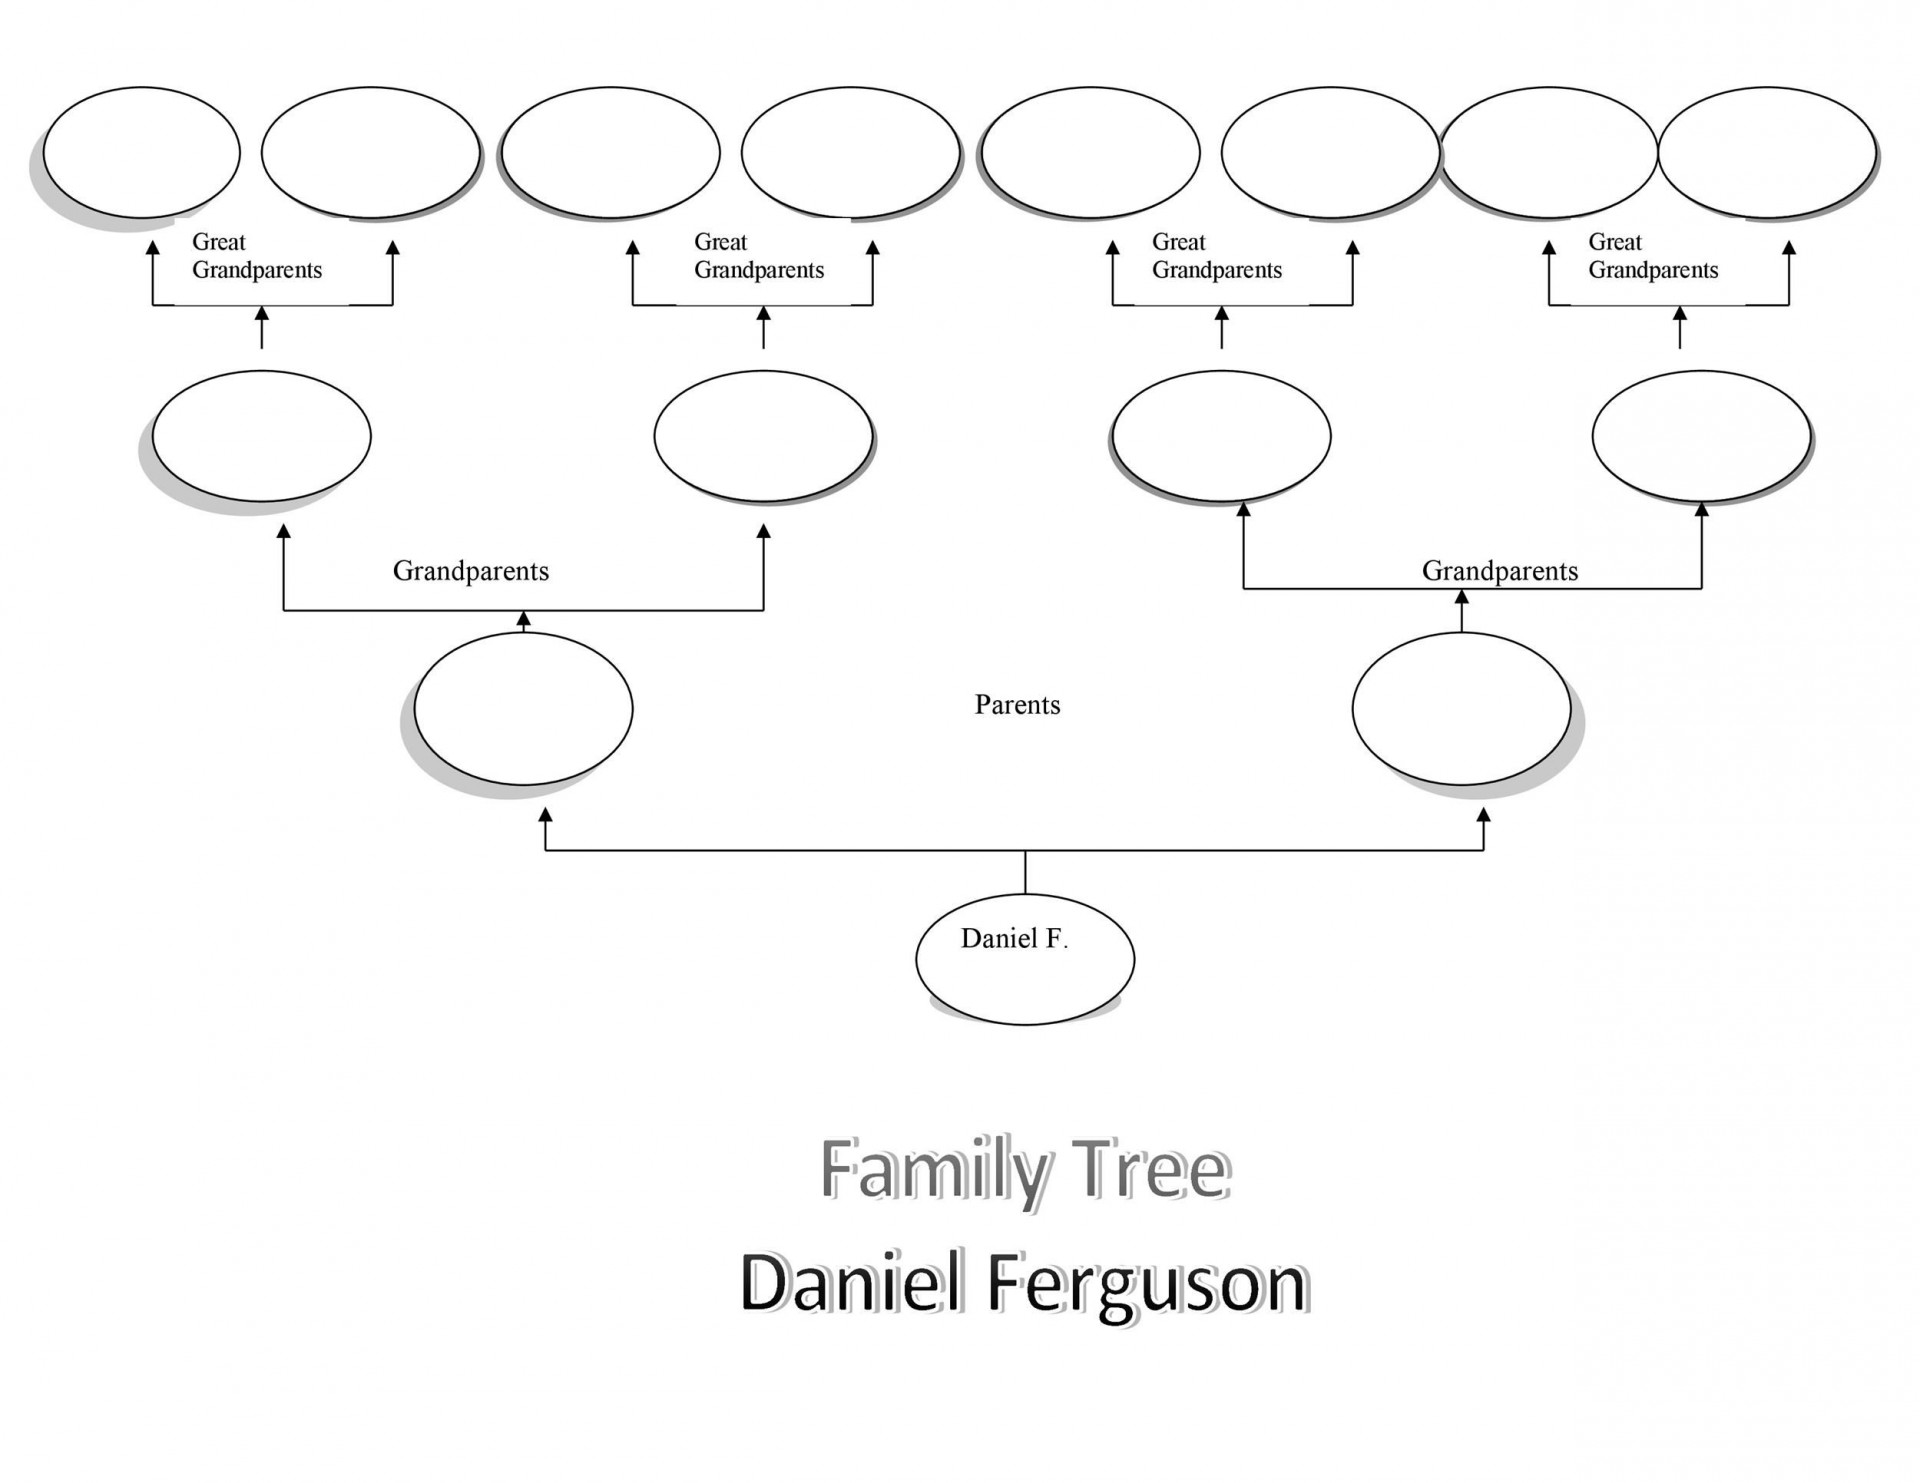 008 Incredible Family Tree Template Word Sample  Free 2010 Doc Download1920